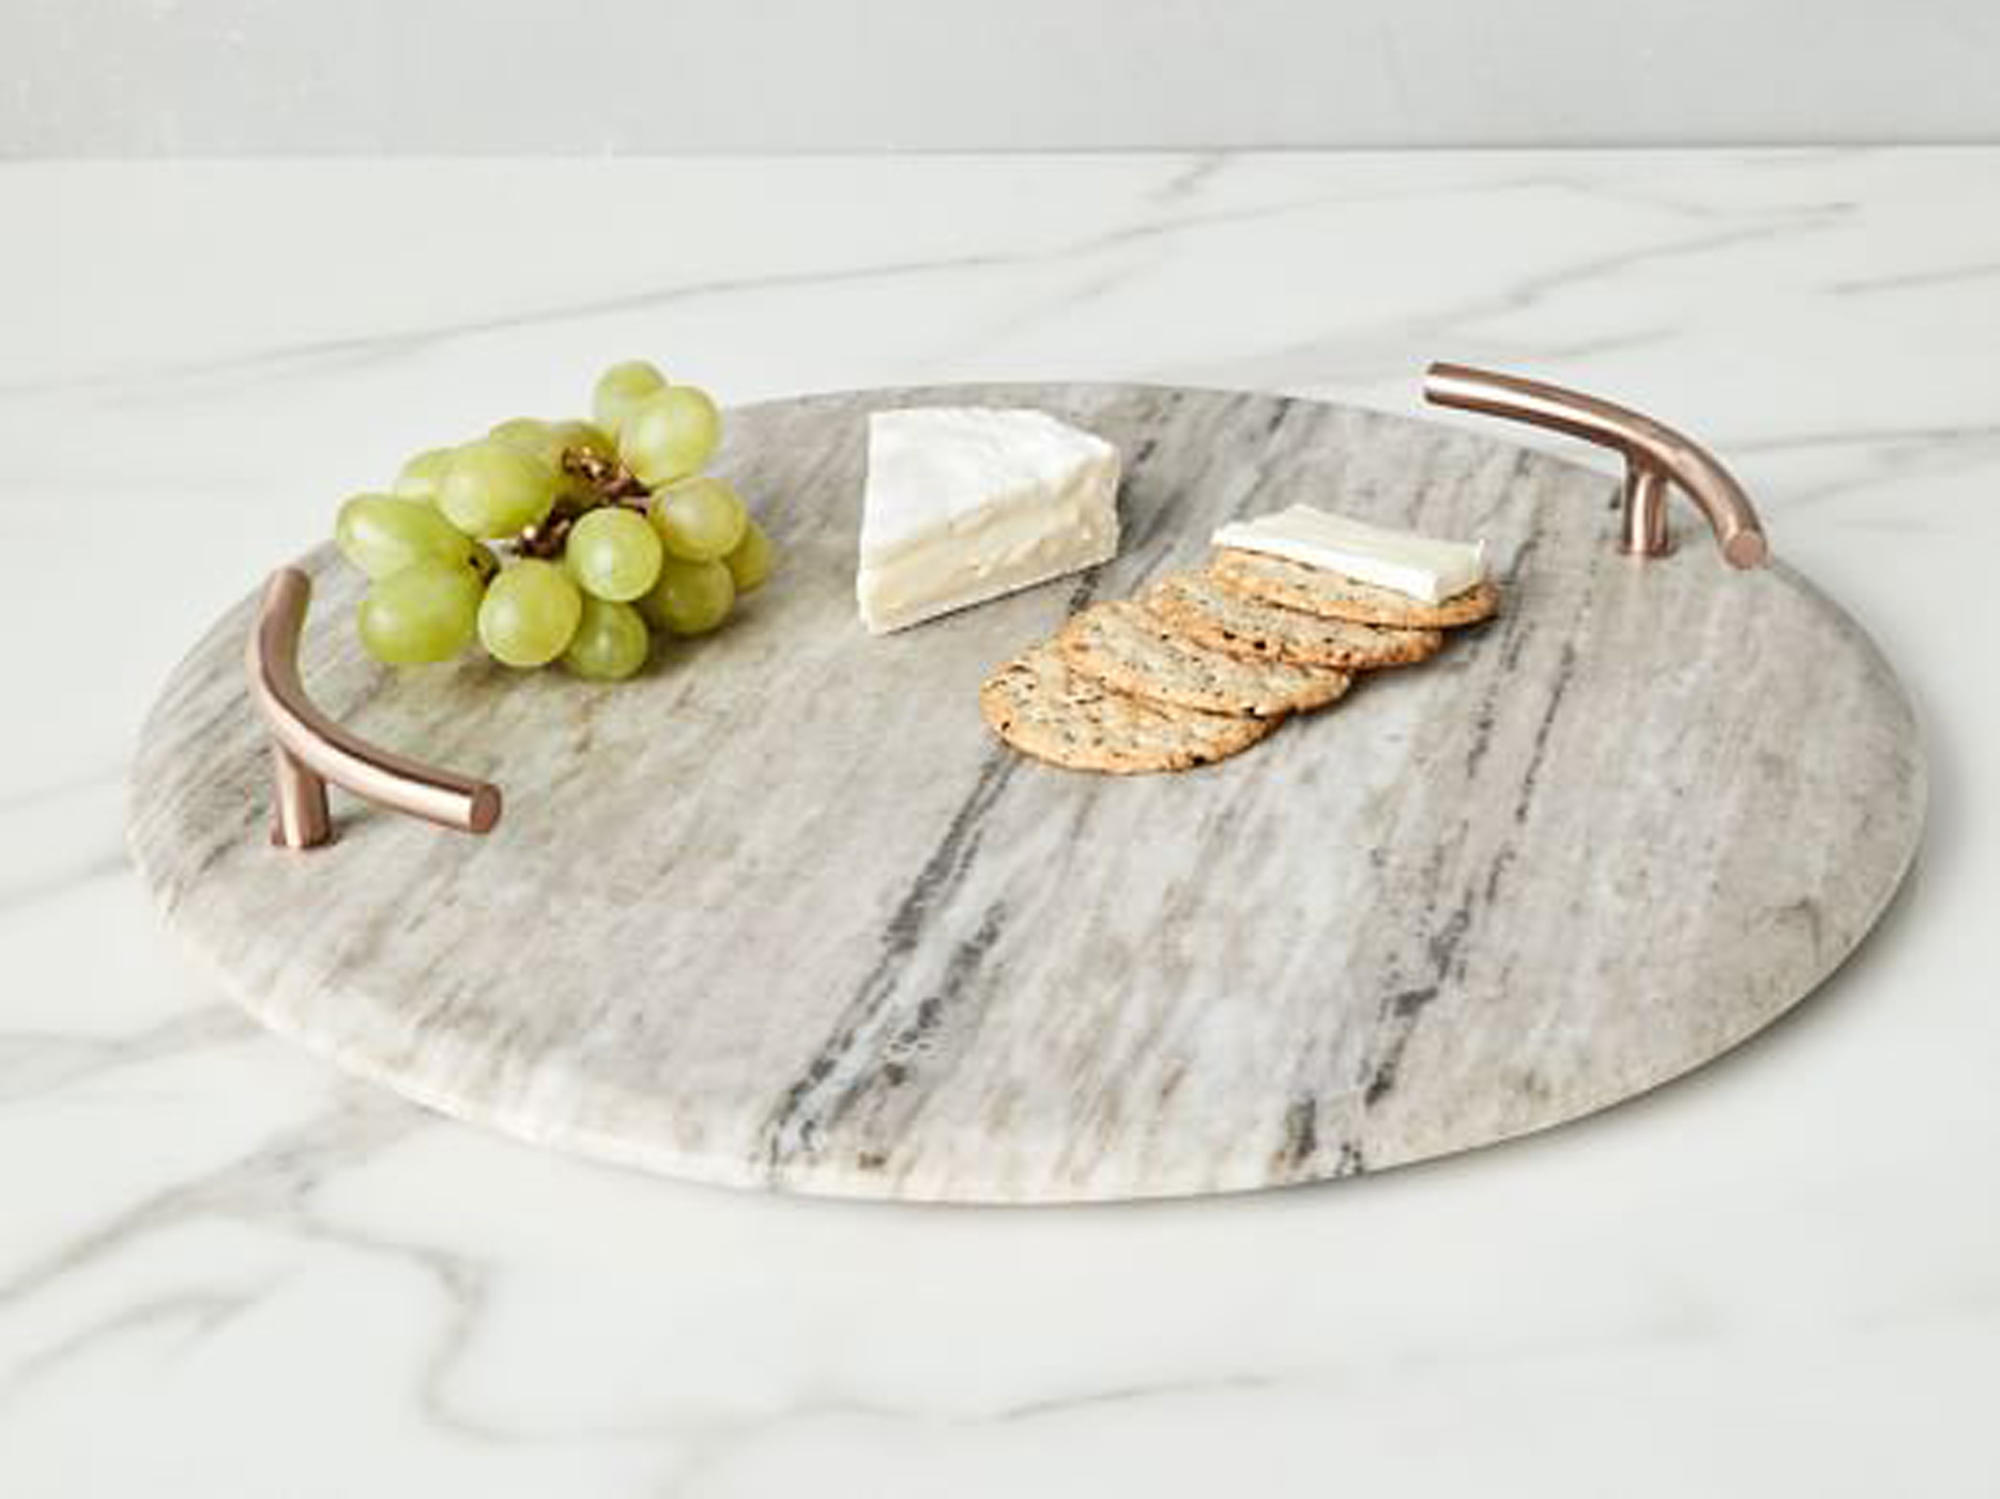 How to Build a Minimalist Cheese Board